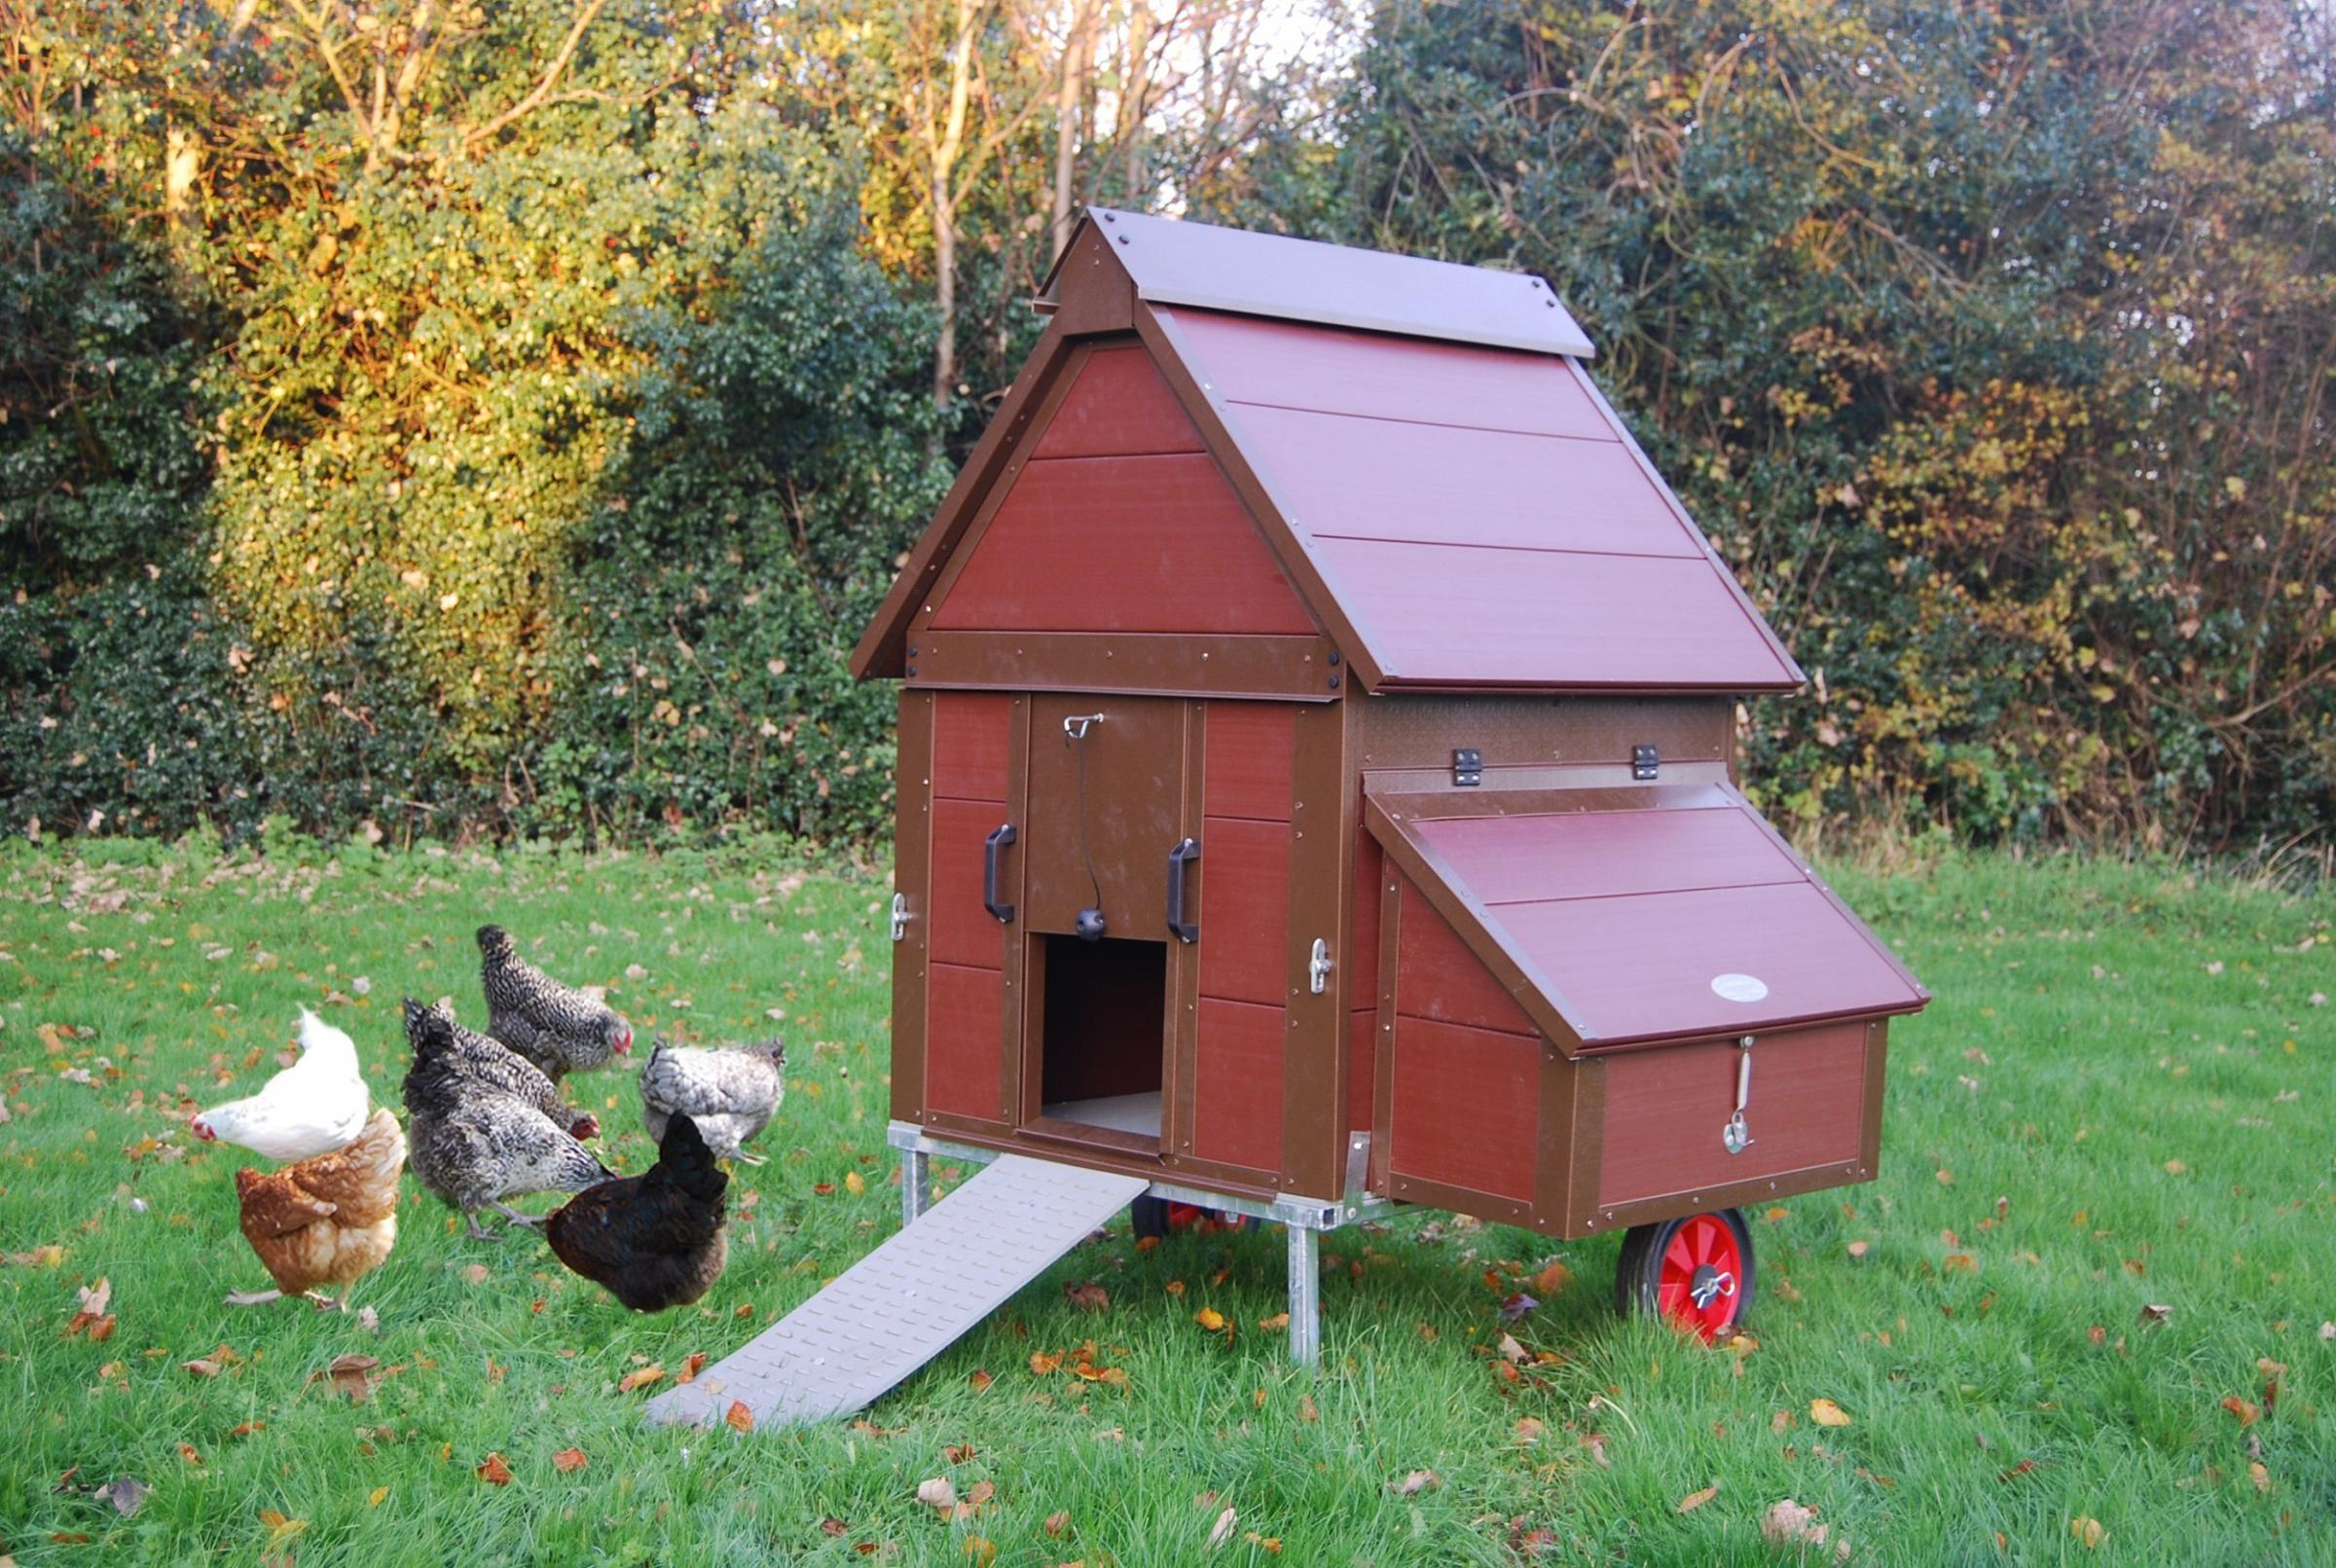 The plastic hen house